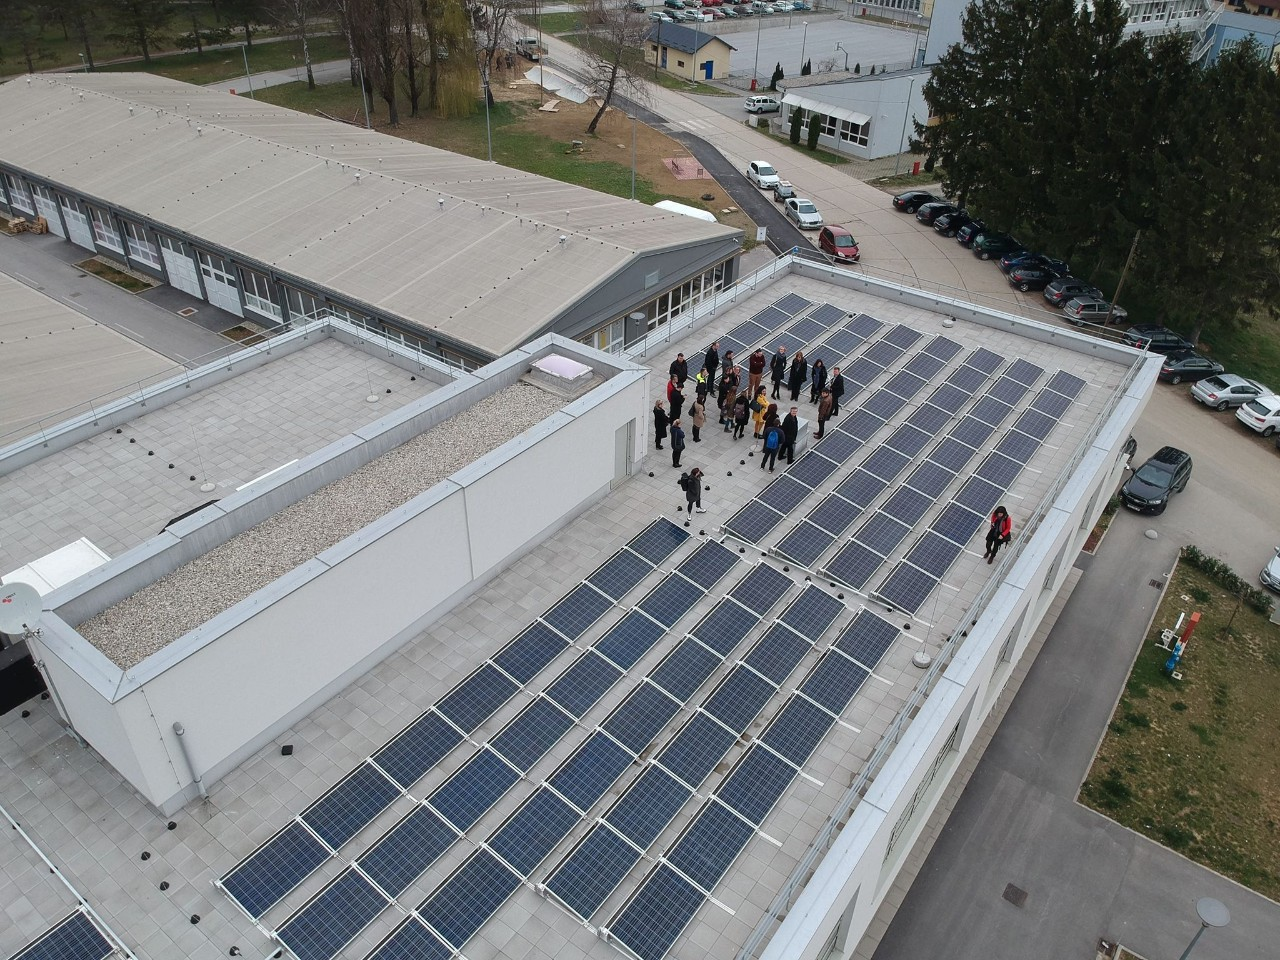 UNDP launches new initiative with mayors to boost solar energy